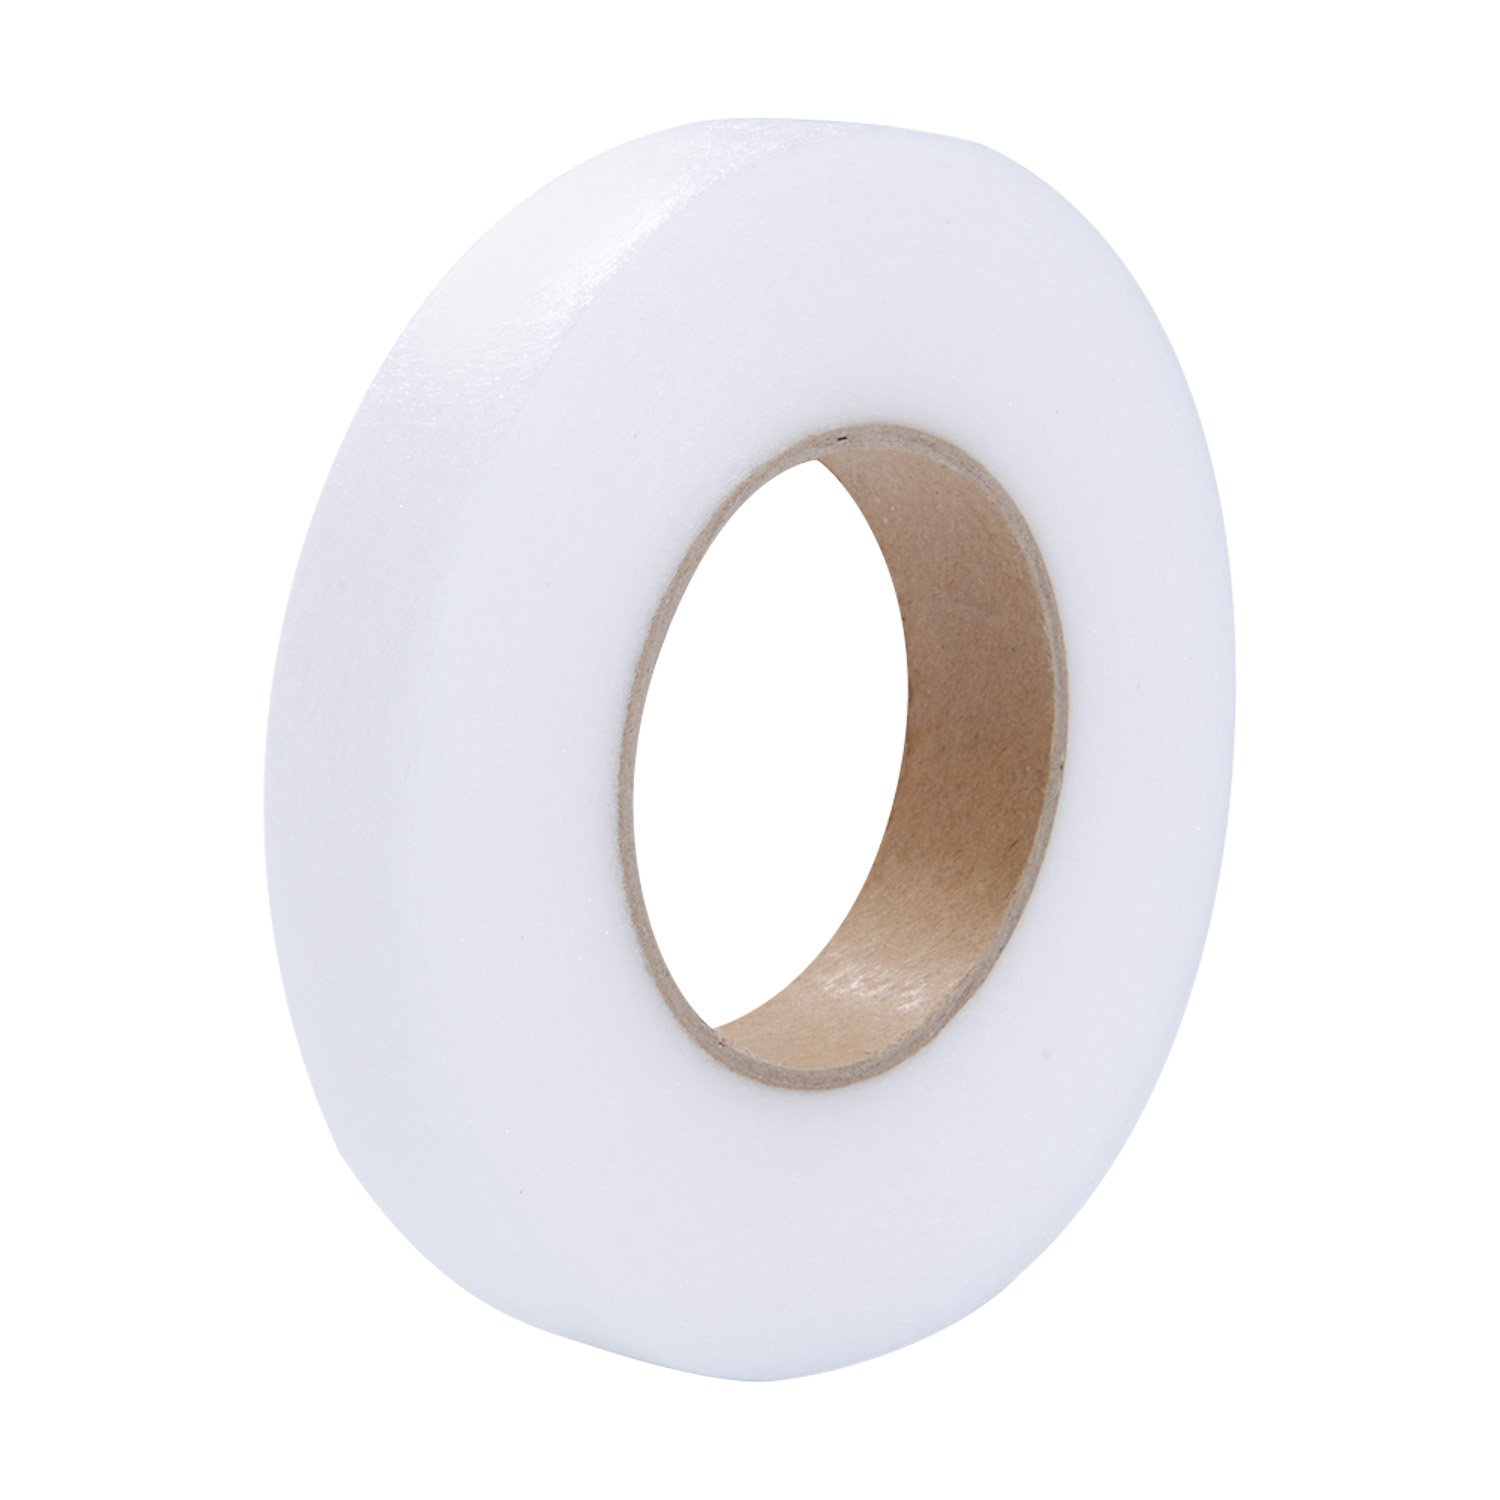 Miraclekoo Fabric Fusing Tape Adhesive Hem Tape Iron-on Tape 71 Yards 1//2 Inch 3 Pieces